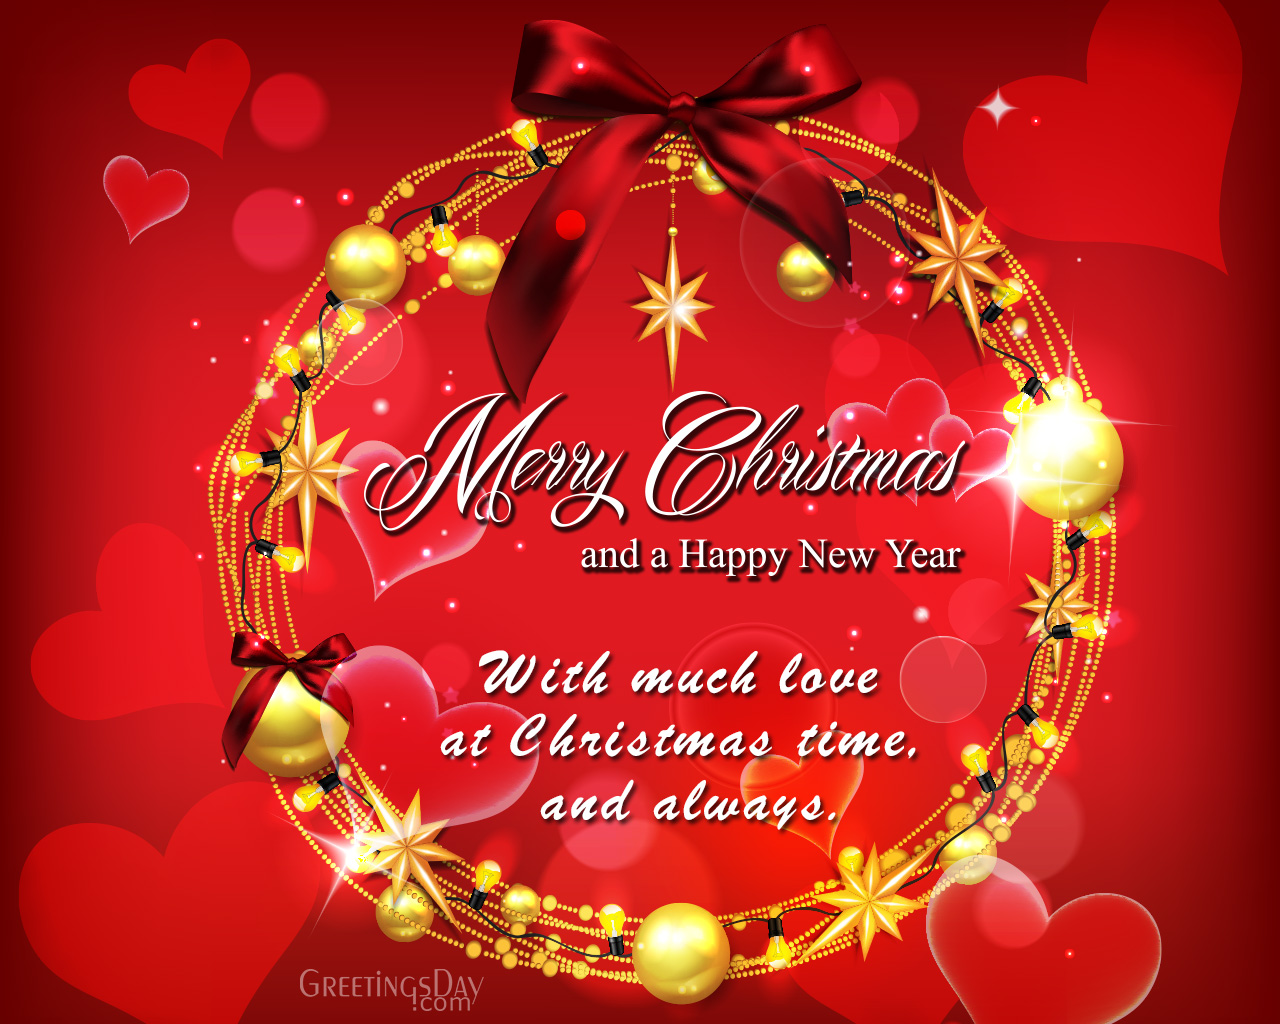 20 christmas greeting cards for boyfriend girlfriend husband or honey i wish you a very merry christmas may the year ahead be full of joy and wonderful surprises m4hsunfo